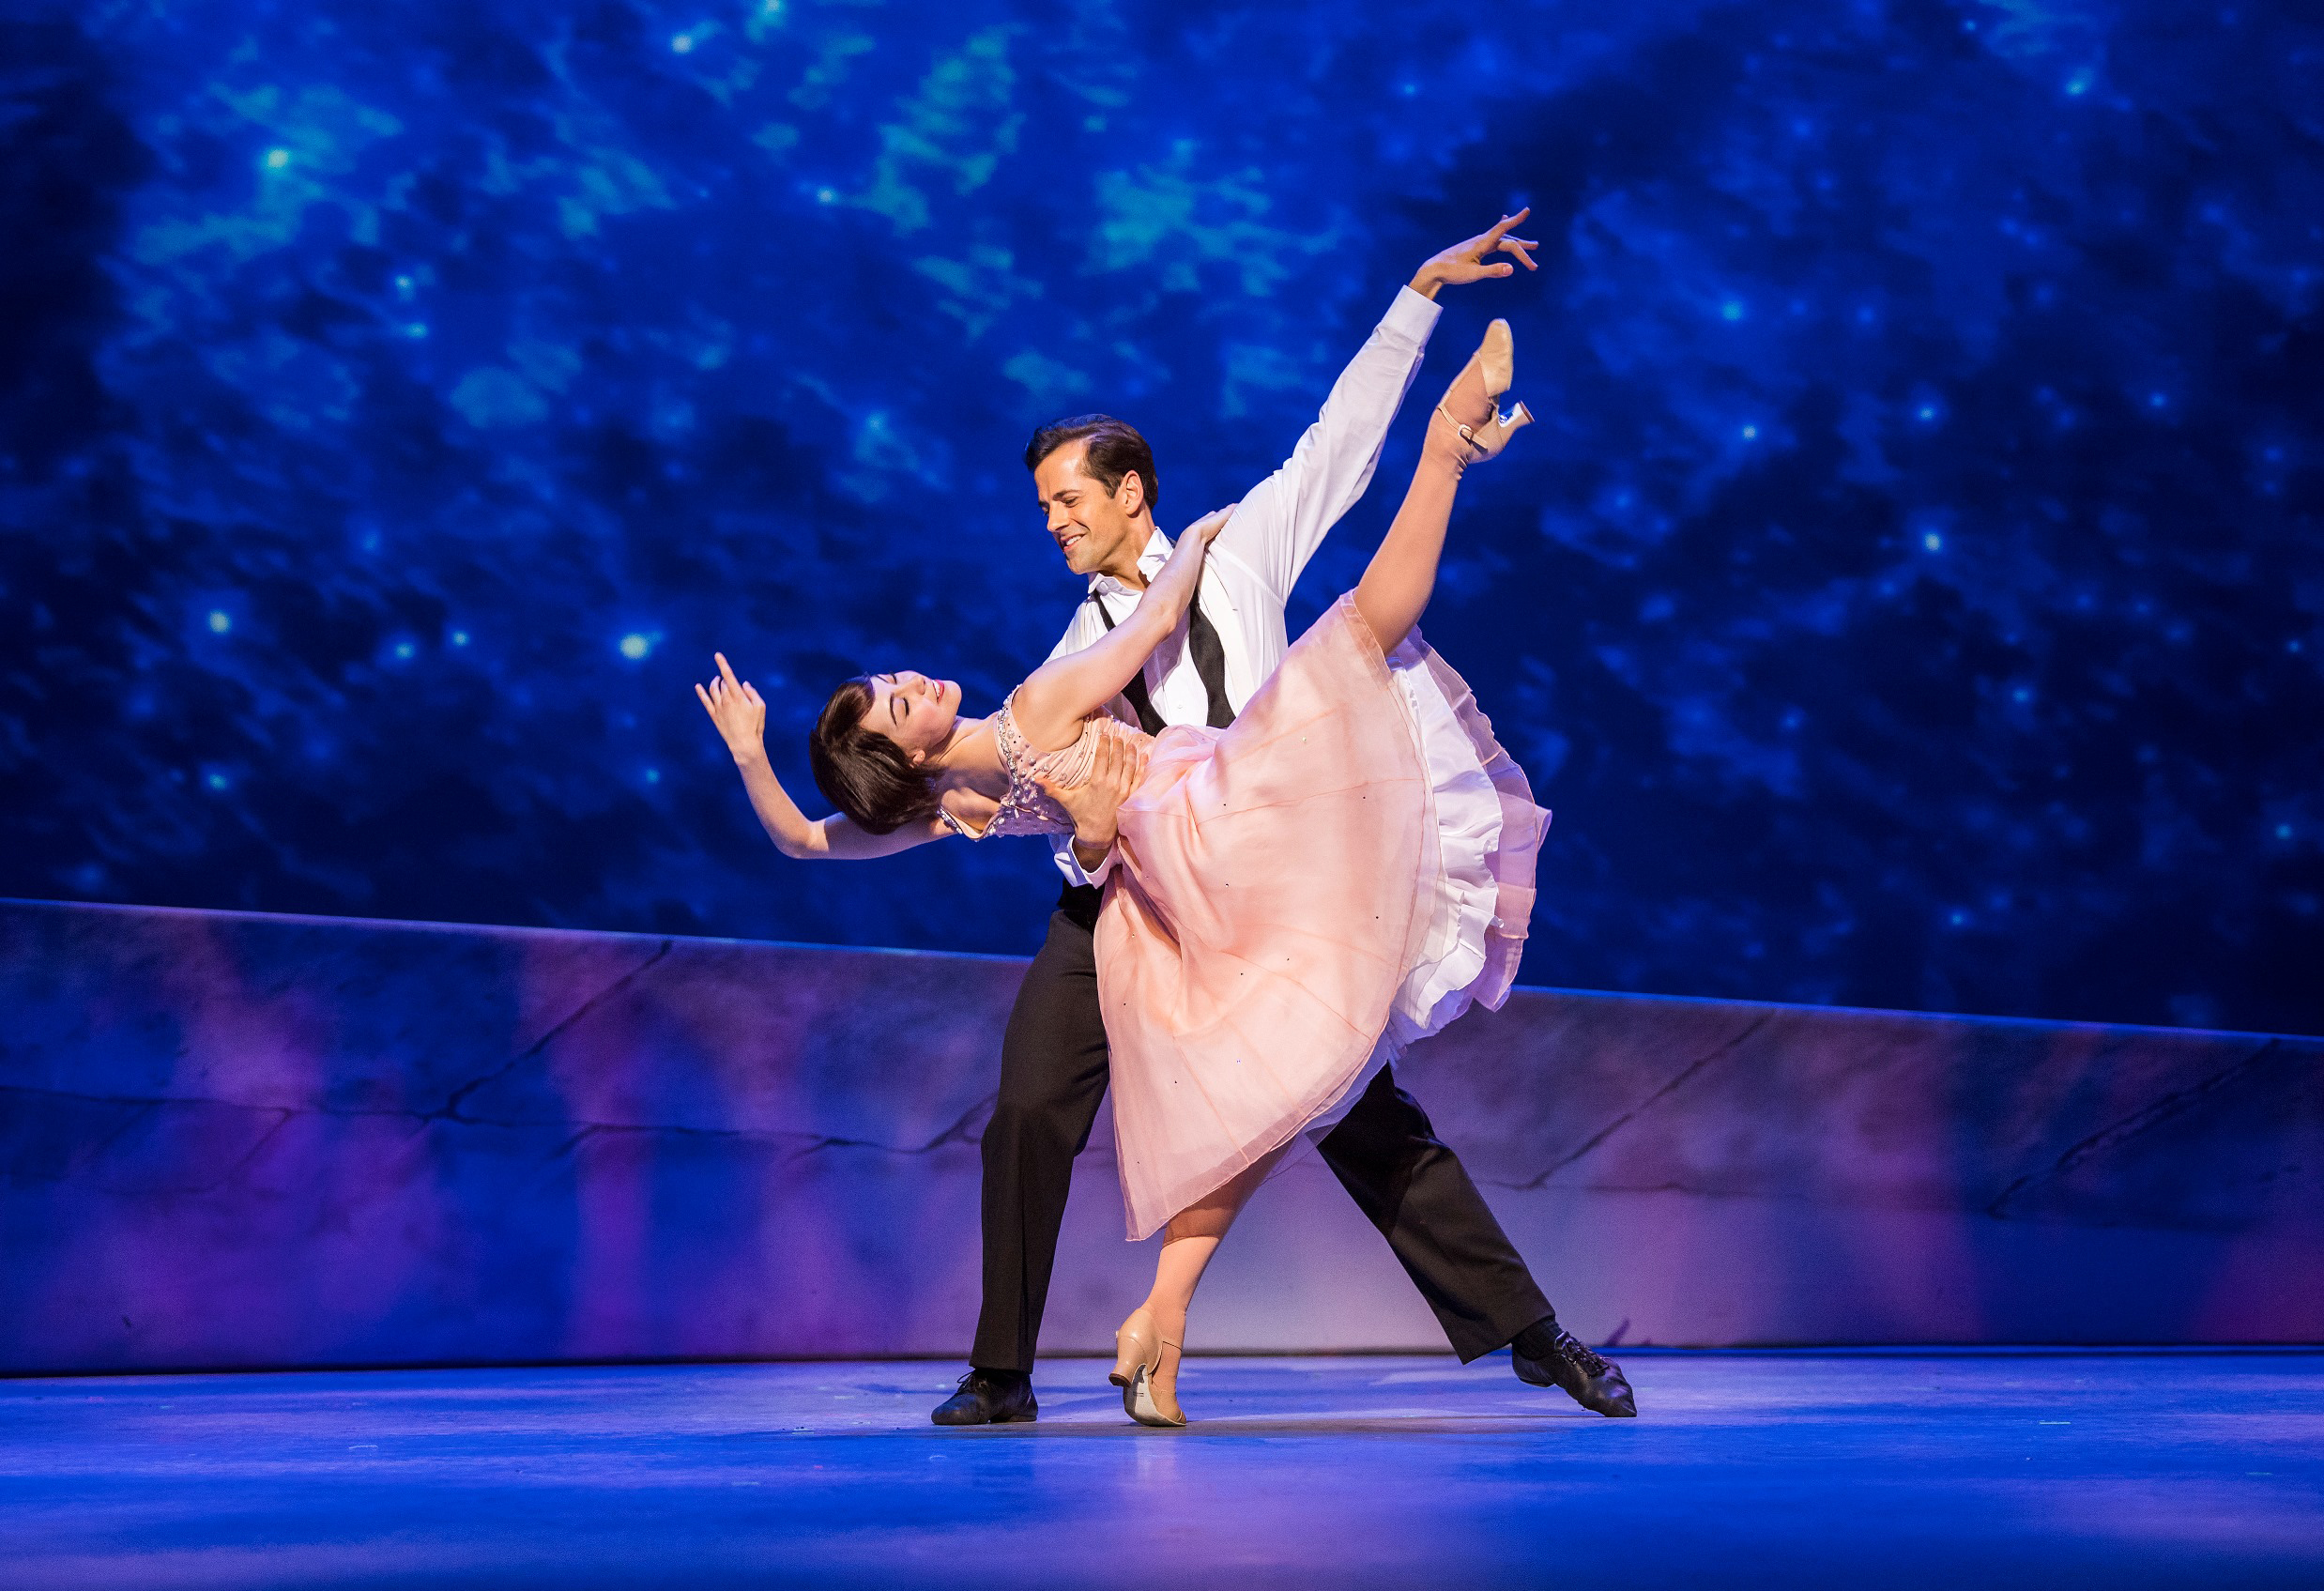 Robert Fairchild (Jerry Mulligan) and Leanne Cope (Lise Dassin) in An American In Paris by George and Ira Gershwin @ Dominion Theatre. Directed and Choreographed by Christopher Wheeldon. (Opening 21-03-17) ゥTristram Kenton 03-17 (3 Raveley Street, LONDON NW5 2HX TEL 0207 267 5550  Mob 07973 617 355)email: tristram@tristramkenton.com